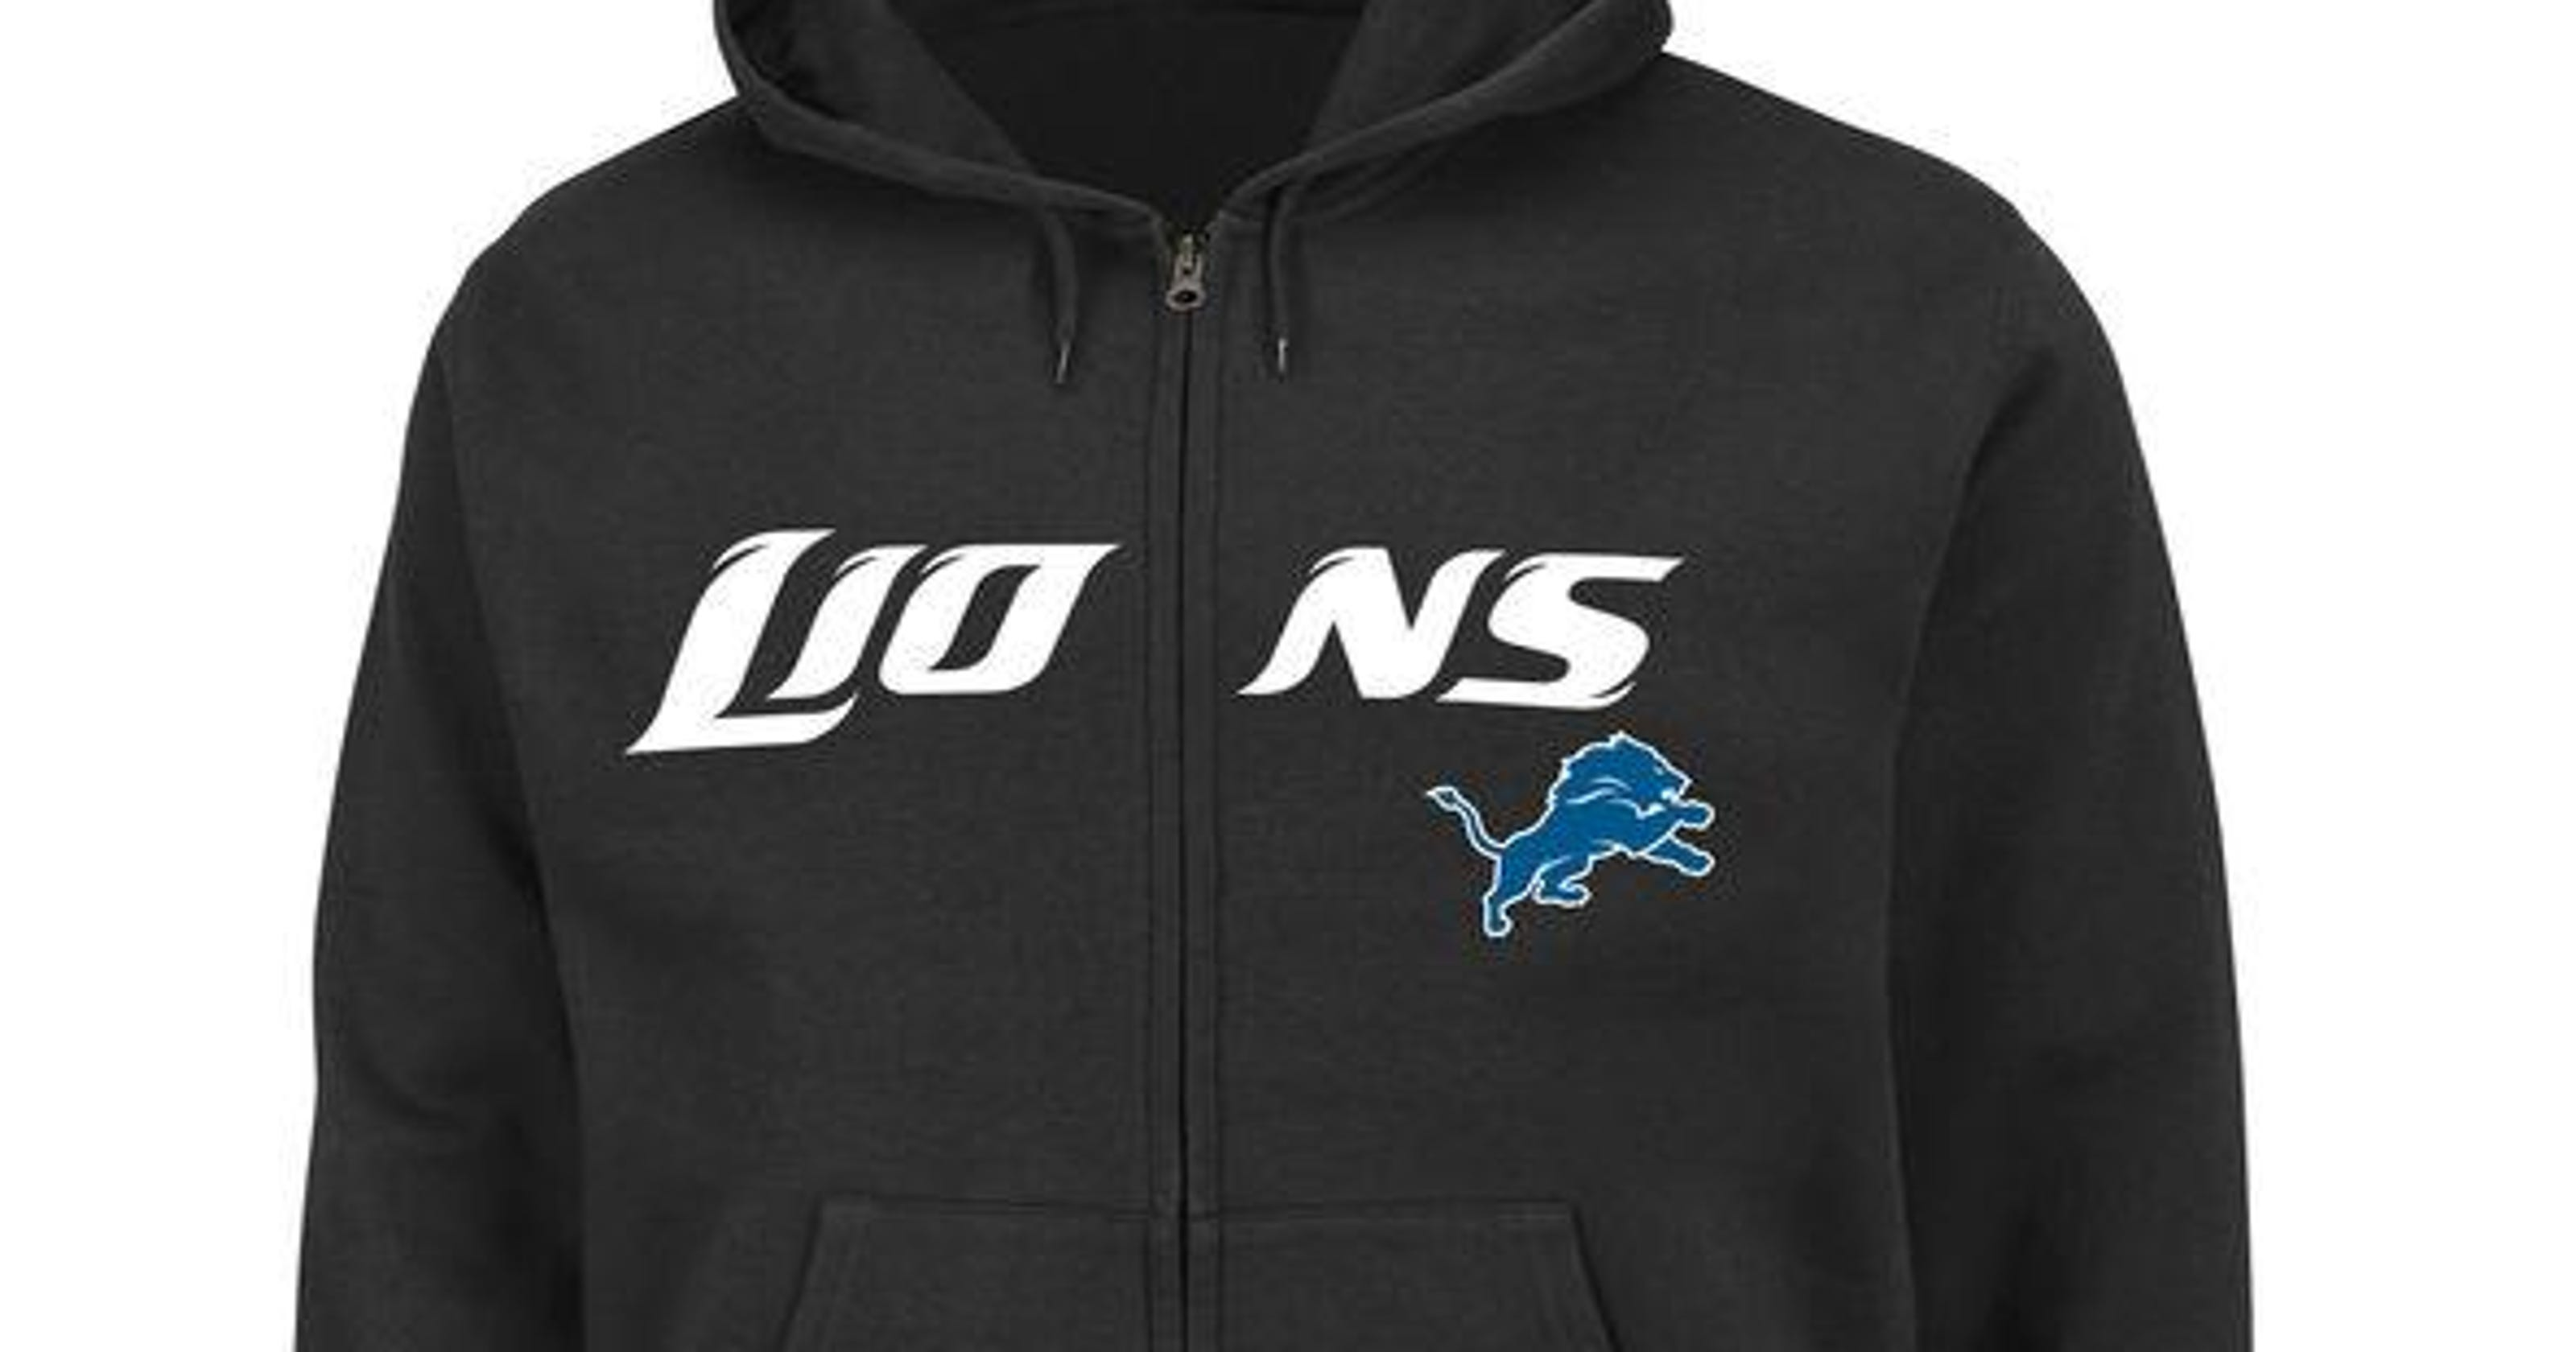 Souvenir of the week  Lio-ns black hoodie a7275f08d6